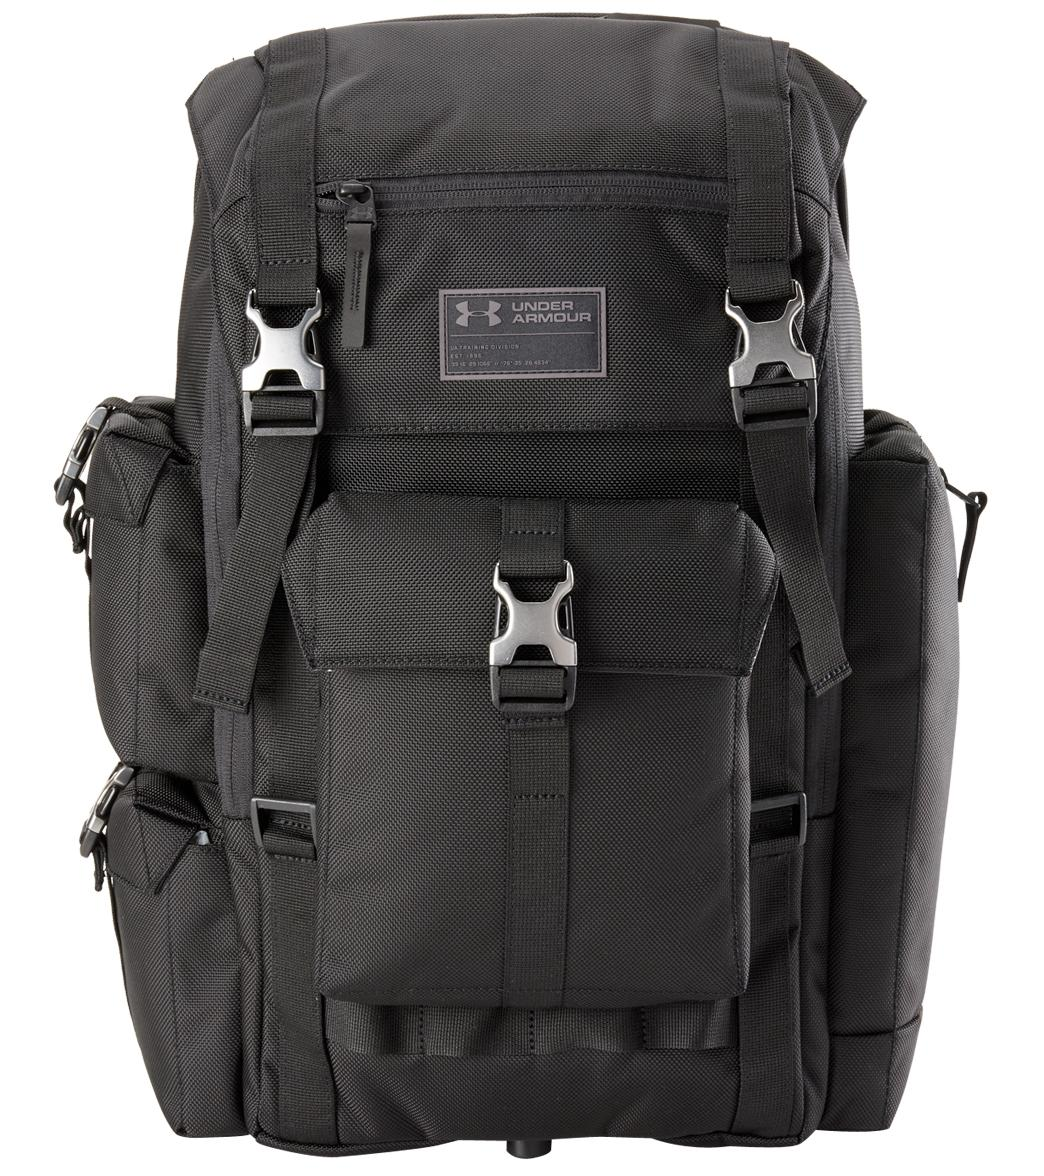 636f72017035 Under Armour Men s Cordura Regiment Backpack at SwimOutlet.com - Free  Shipping